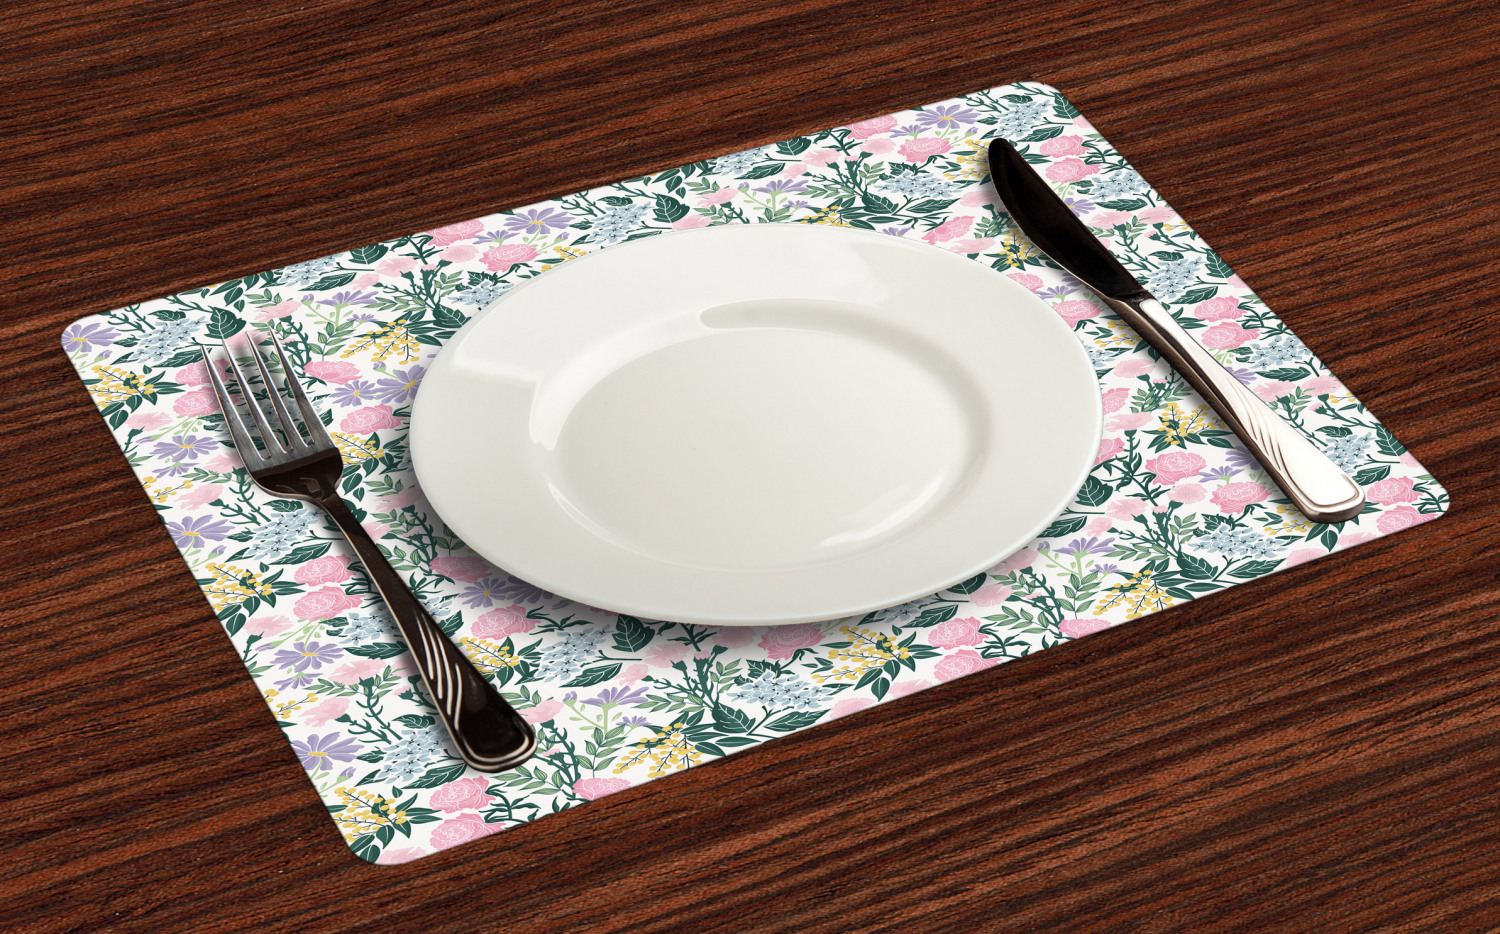 Ambesonne-Fabric-Place-Mats-Set-of-4-Placemats-for-Dining-Room-and-Kitchen-Table thumbnail 117